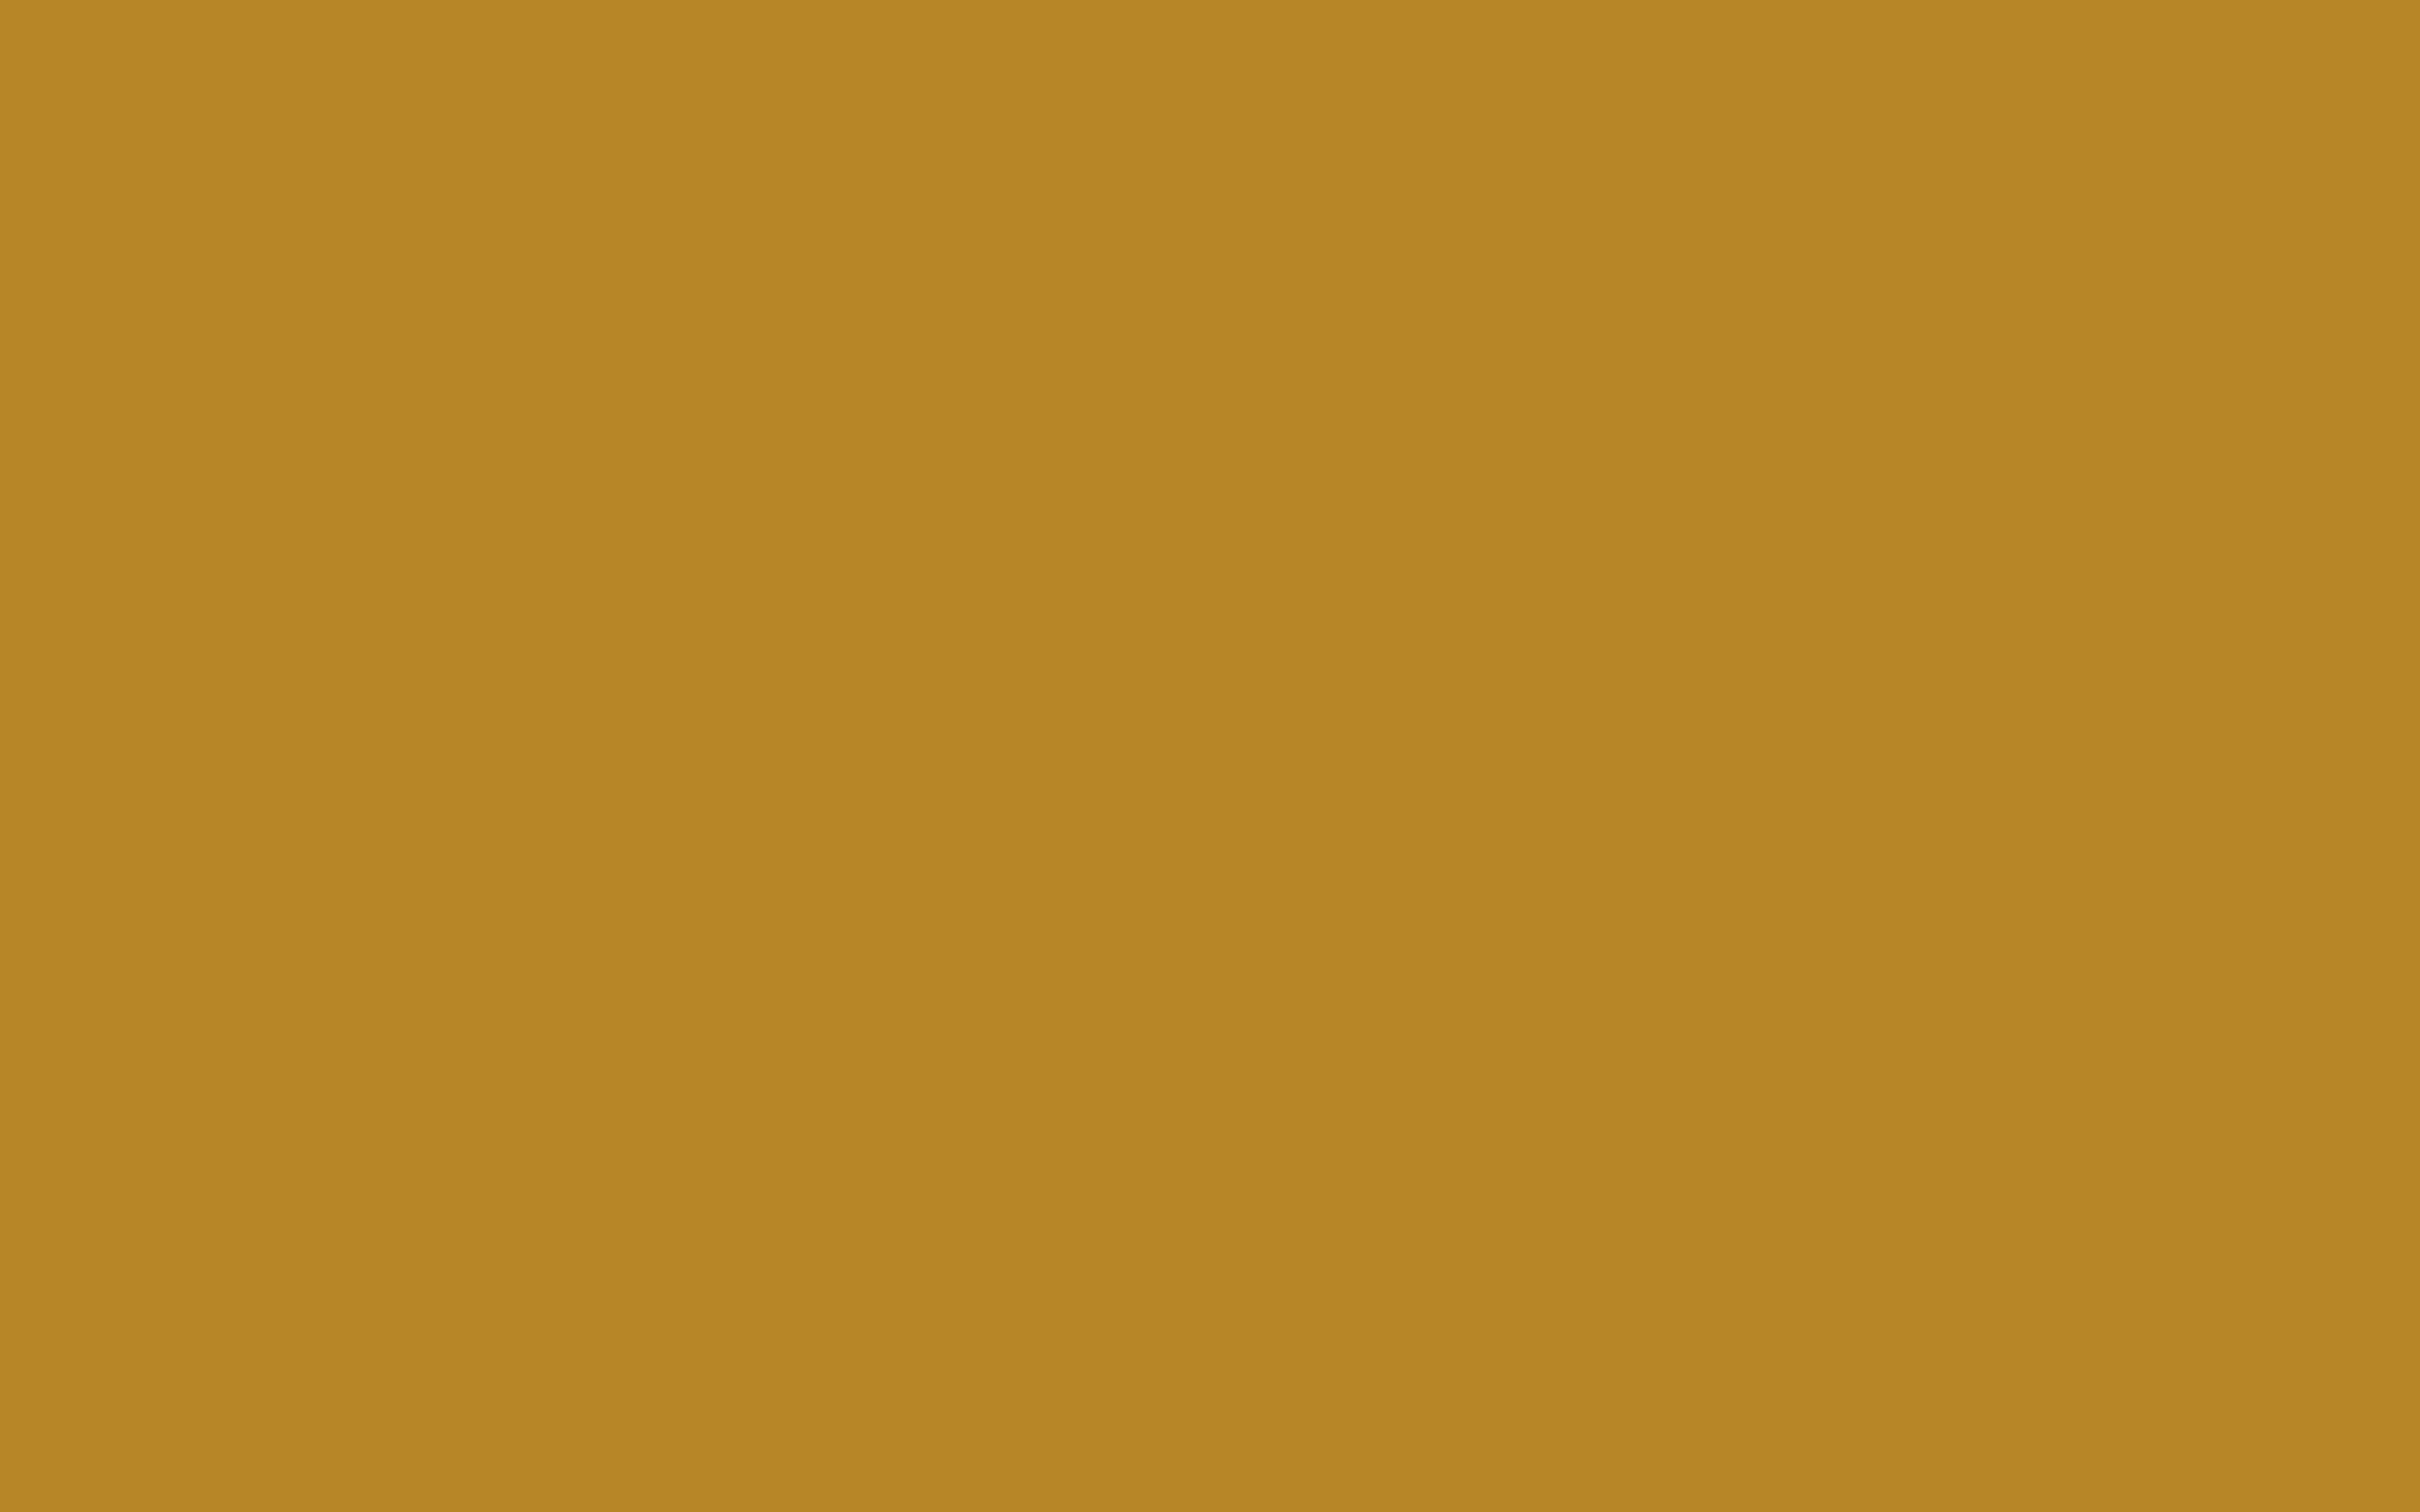 2560x1600 University Of California Gold Solid Color Background